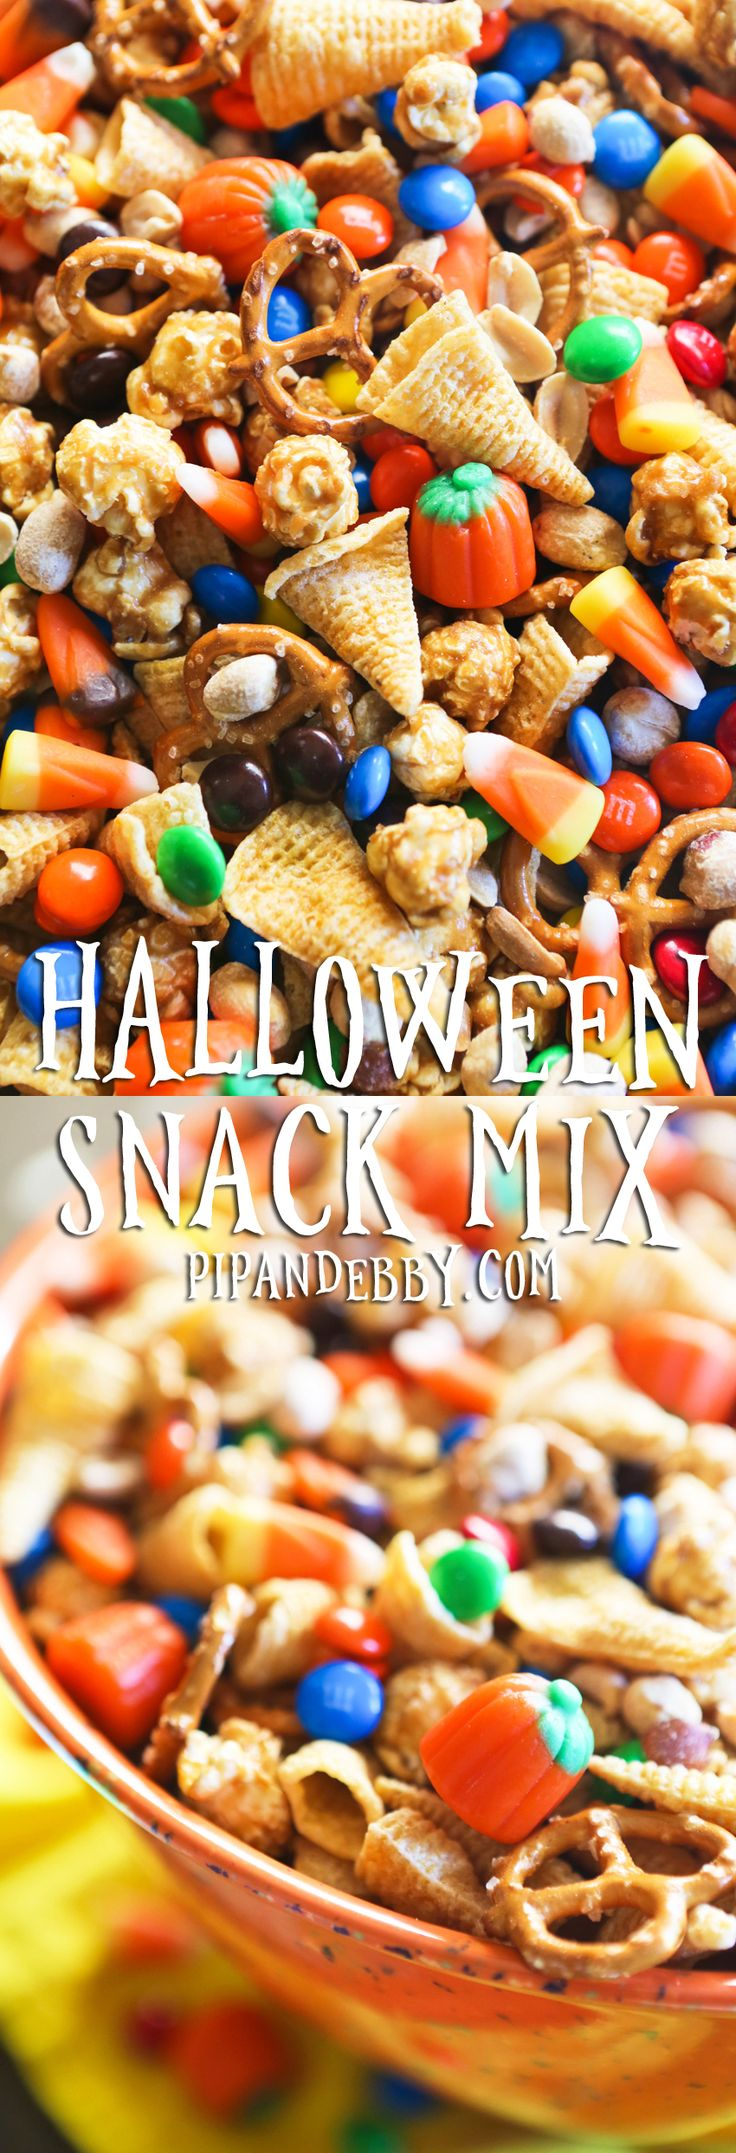 73 best images about bry halloween on pinterest easy for Fall cooking tips